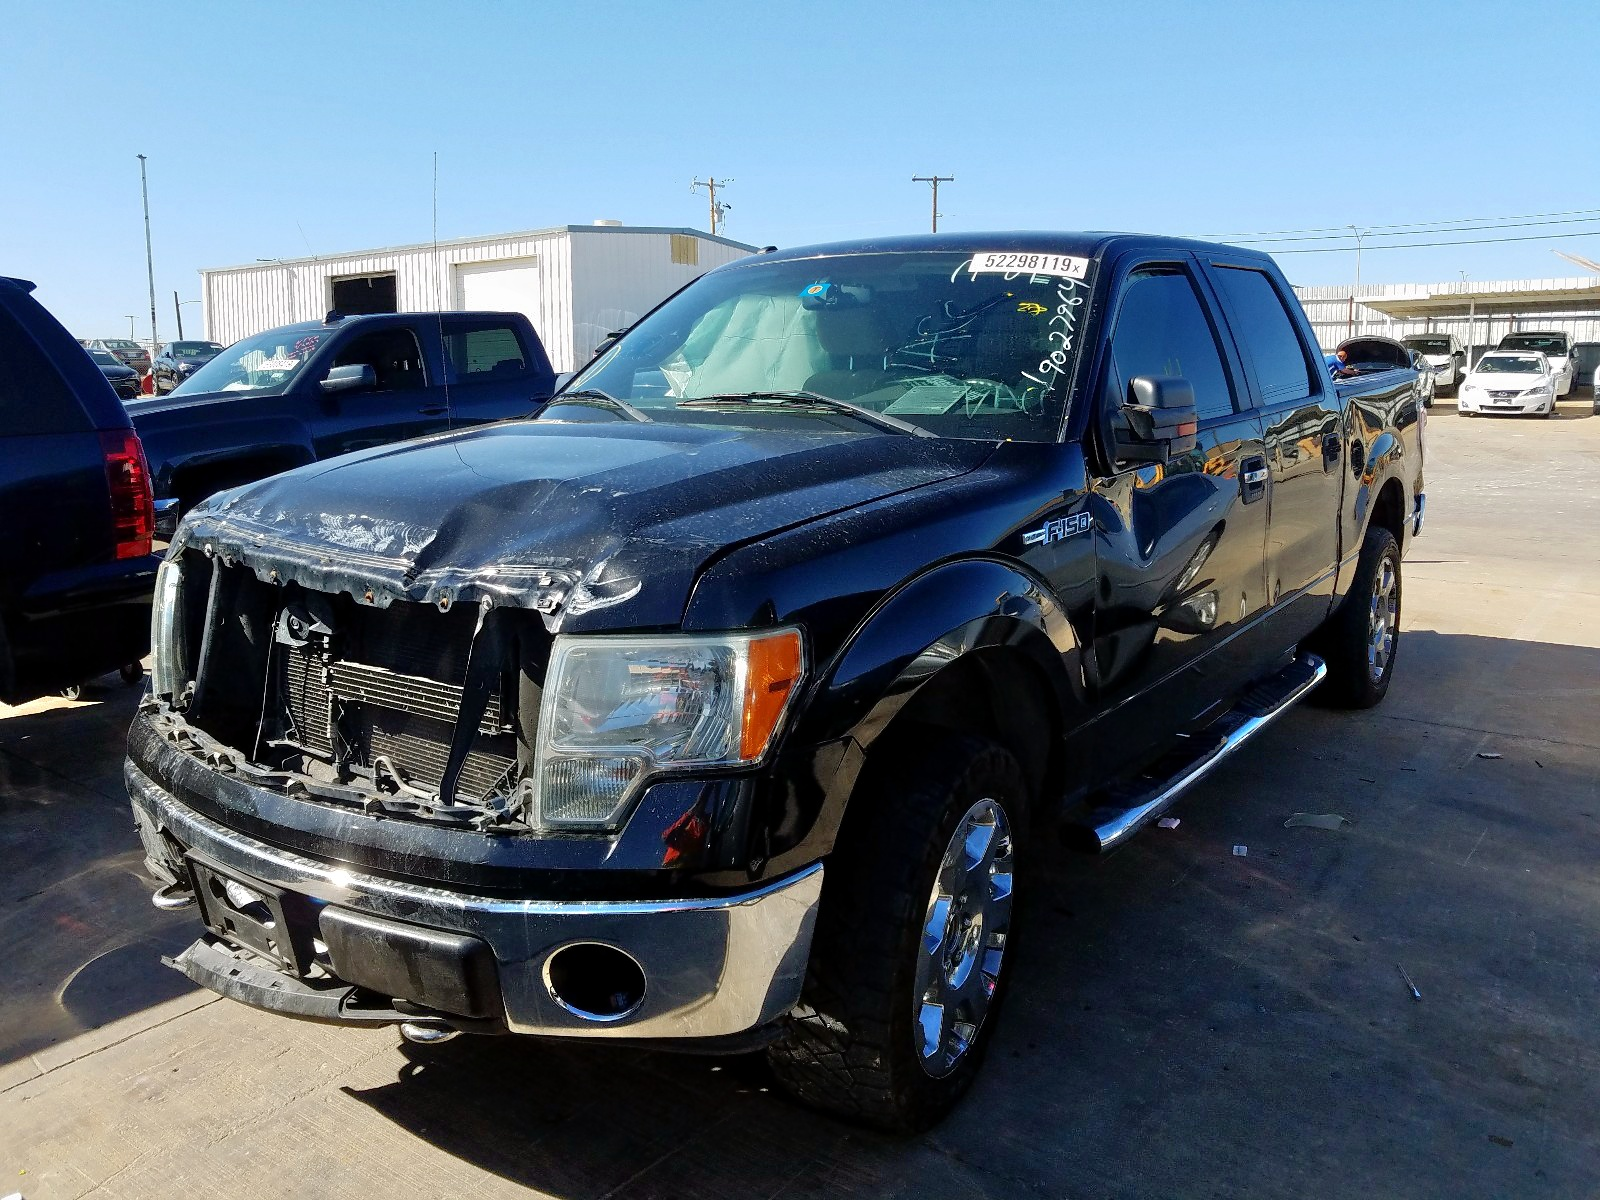 1FTFW1EV9AFC37619 - 2010 Ford F150 Super 5.4L Right View